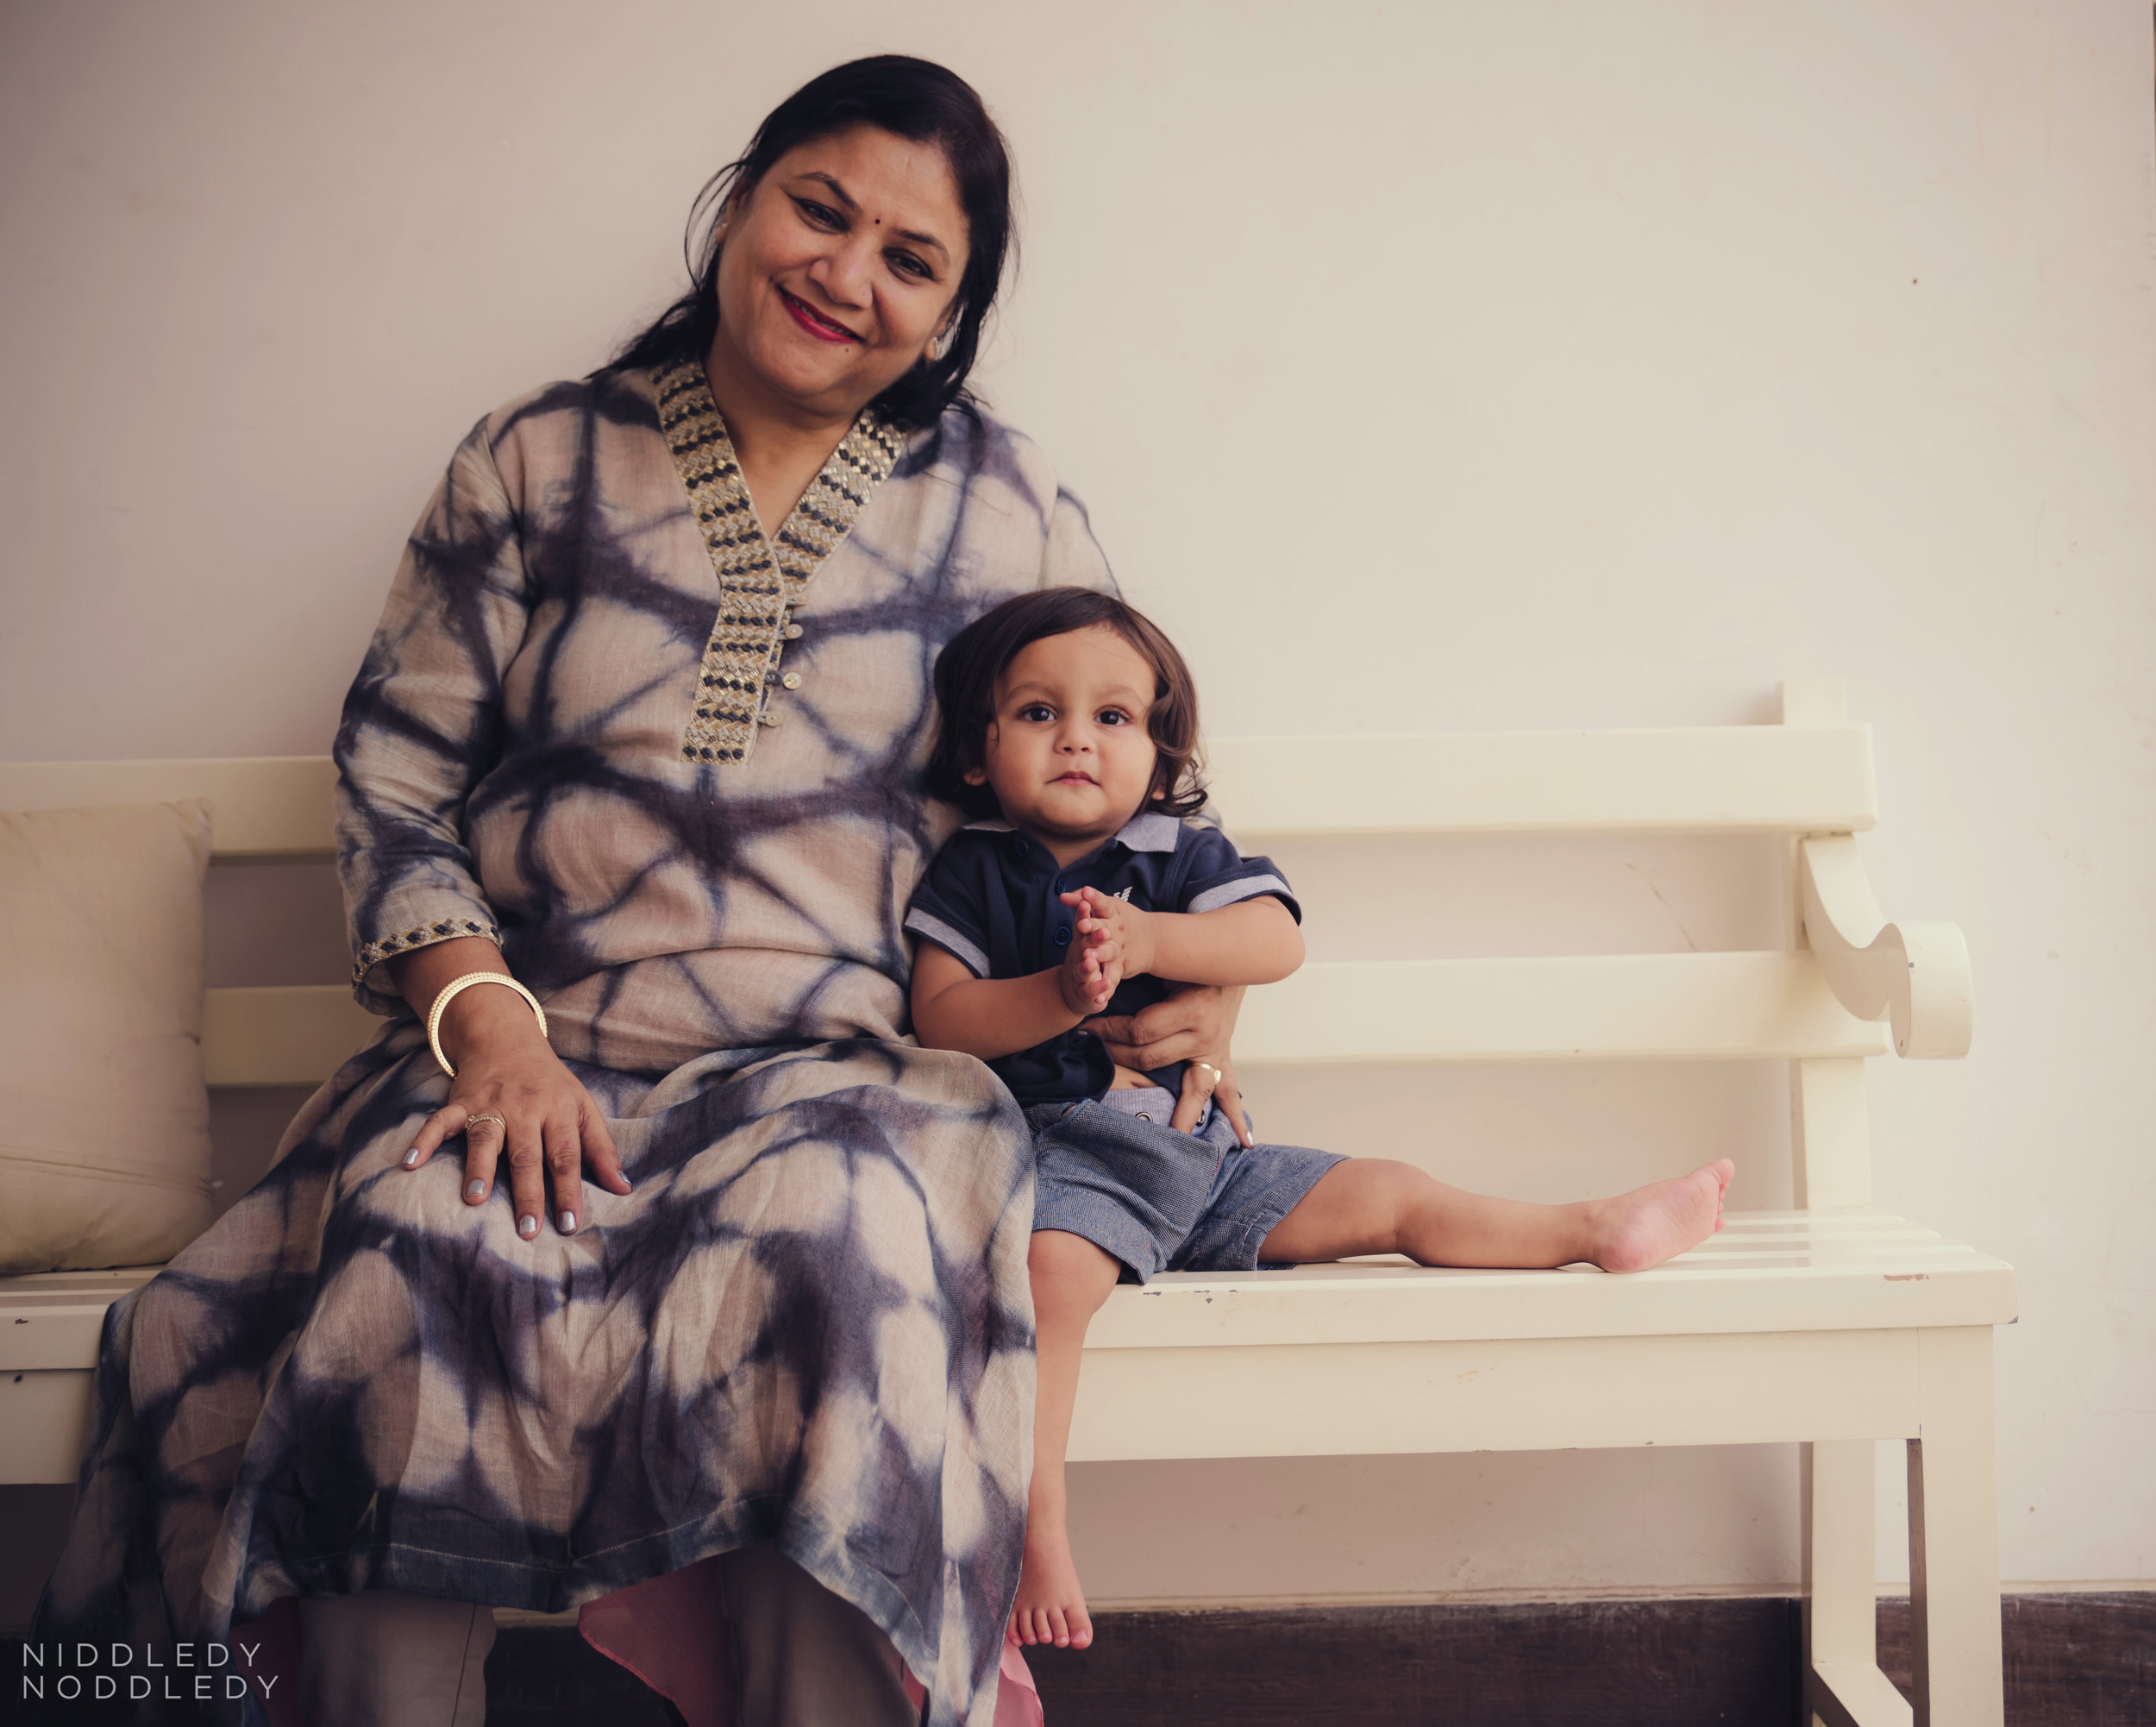 Avyaan's Day Photoshoot ❤ NiddledyNoddledy.com ~ Bumps to Babies Photography, Kolkata - 41.jpg